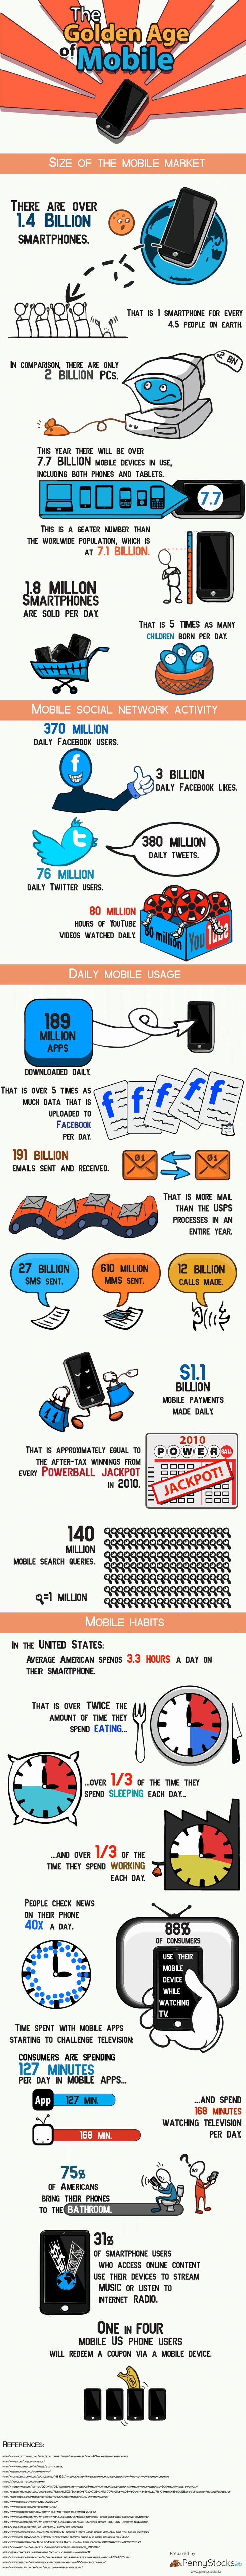 over id eacute er om mobile golden p aring mobiles og cloud what is the activity level and size of the mobile market infographic